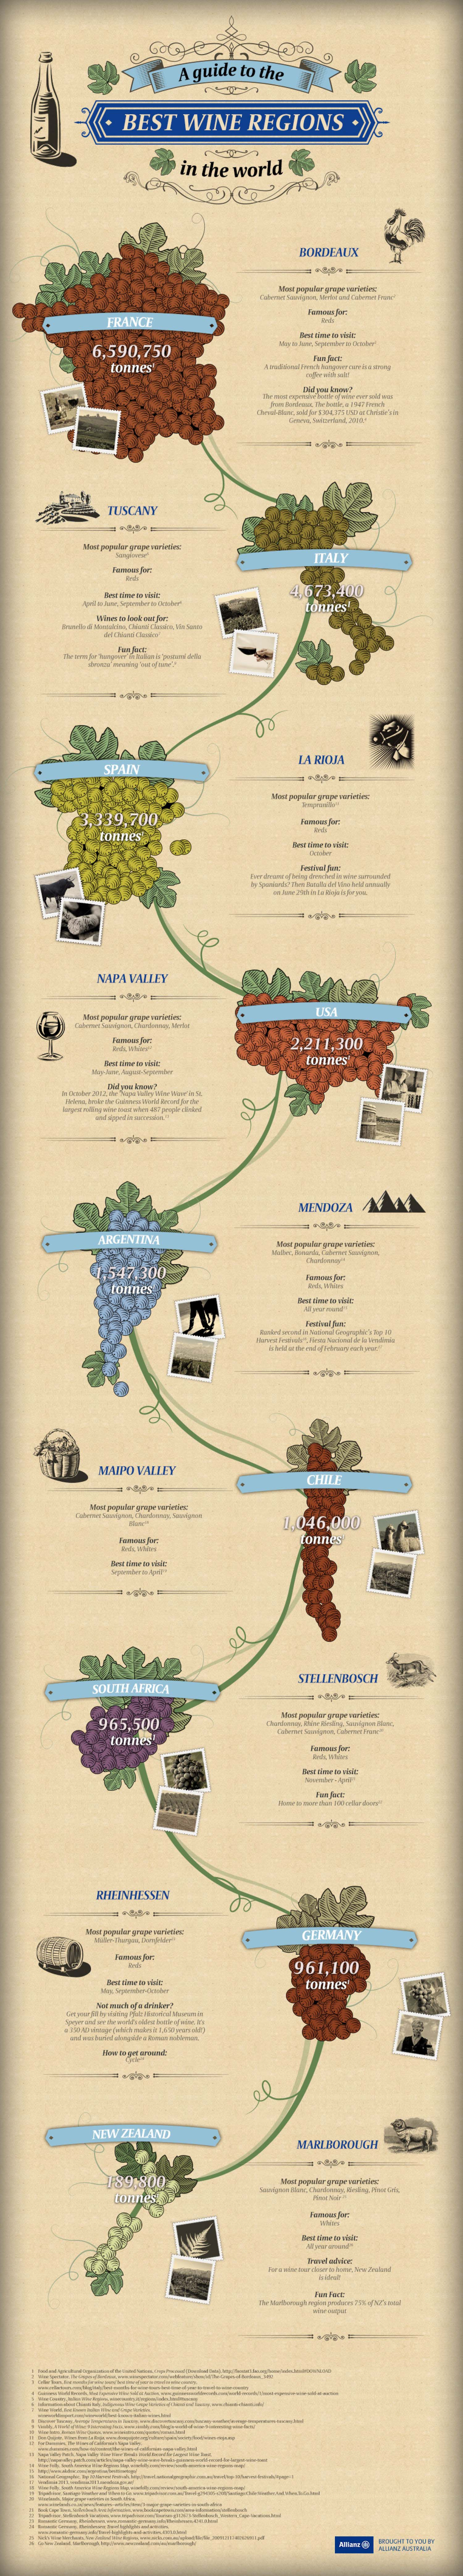 Infographic A Guide to the Best Wine Regions in the World